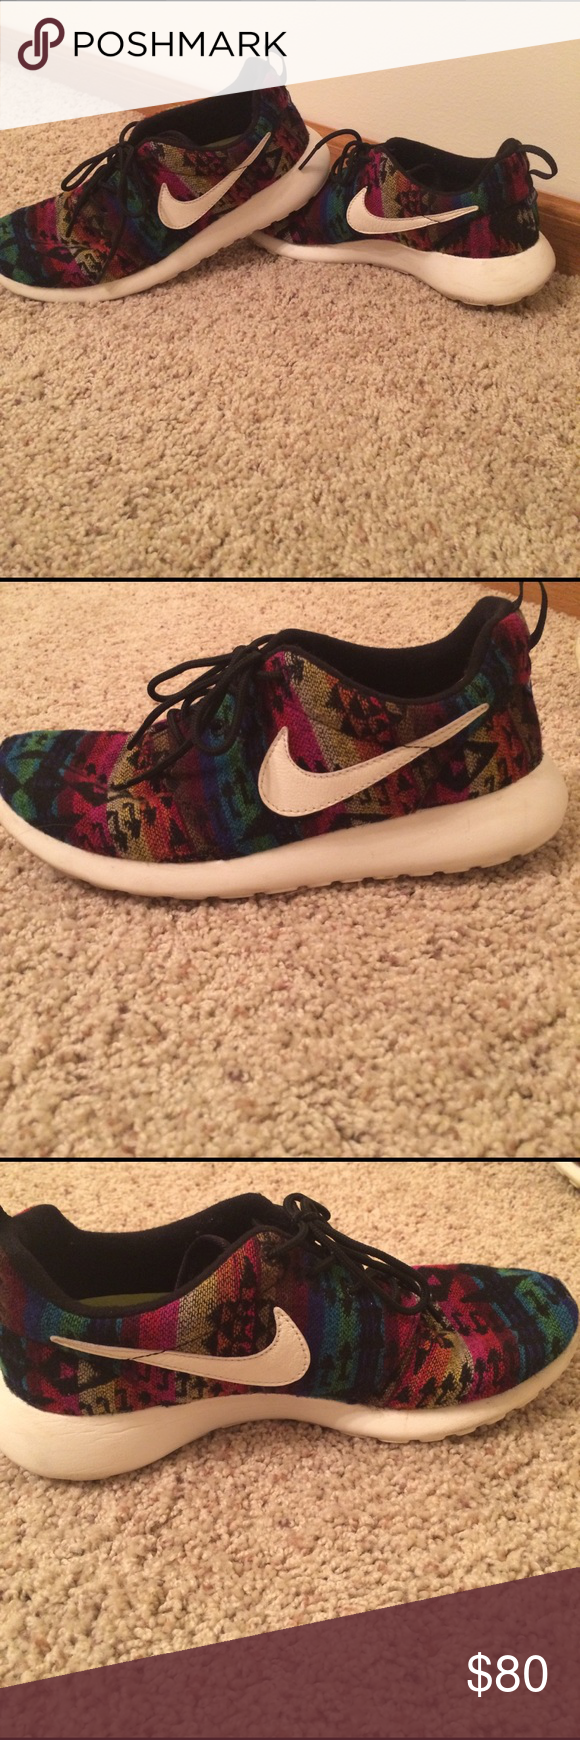 Nike Roshe Tennis Shoes Custom Tribal Print Nike Roshe Running Shoes. Size 8.5. Have some scuffs but overall in working condition. Open to offers! Nike Shoes Athletic Shoes